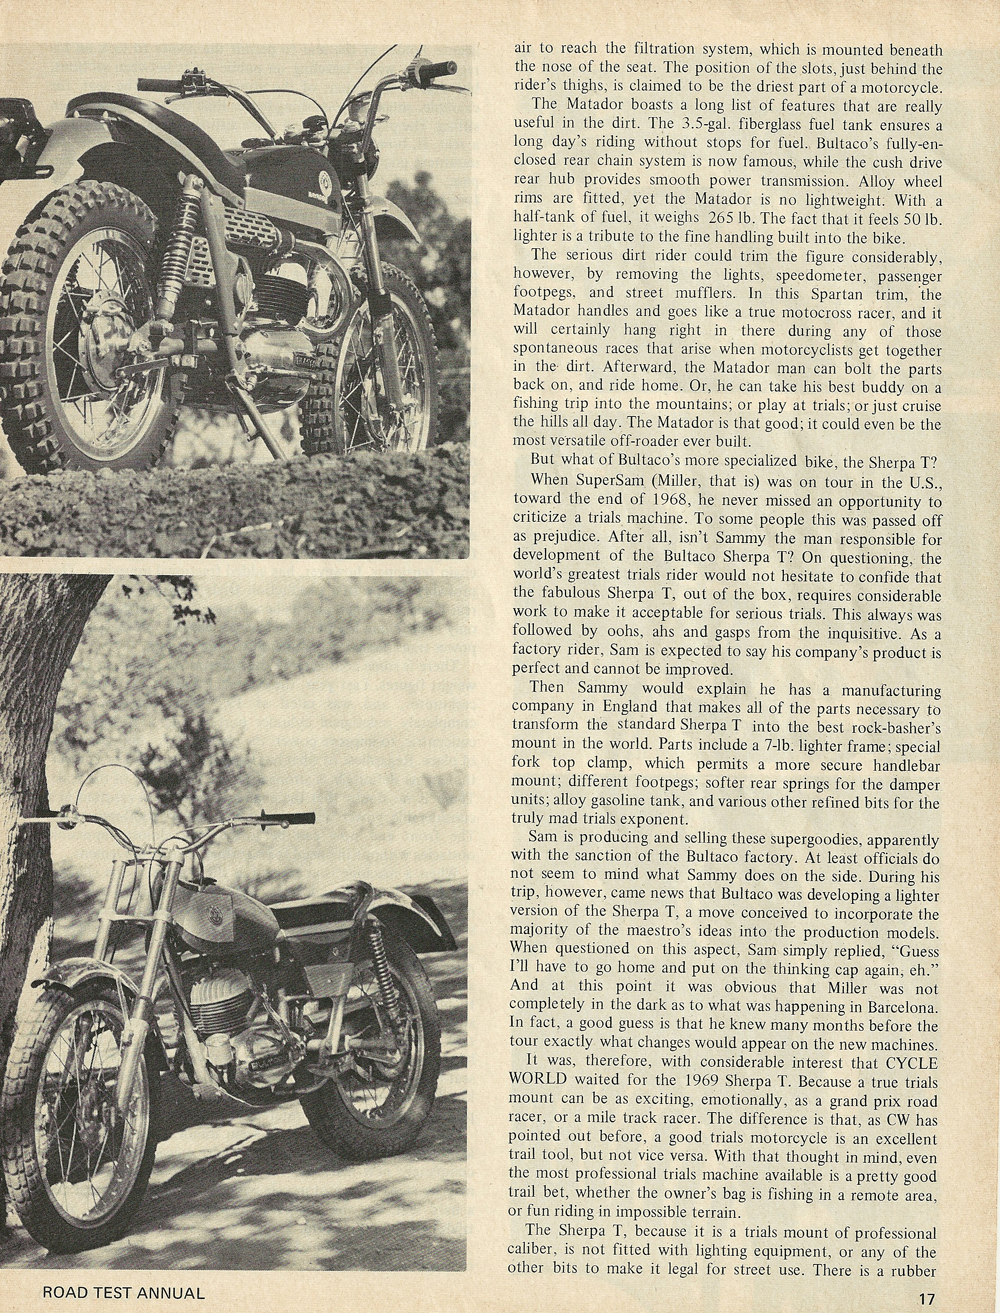 1969 Bultaco Matador and Sherpa T road test 3.jpg